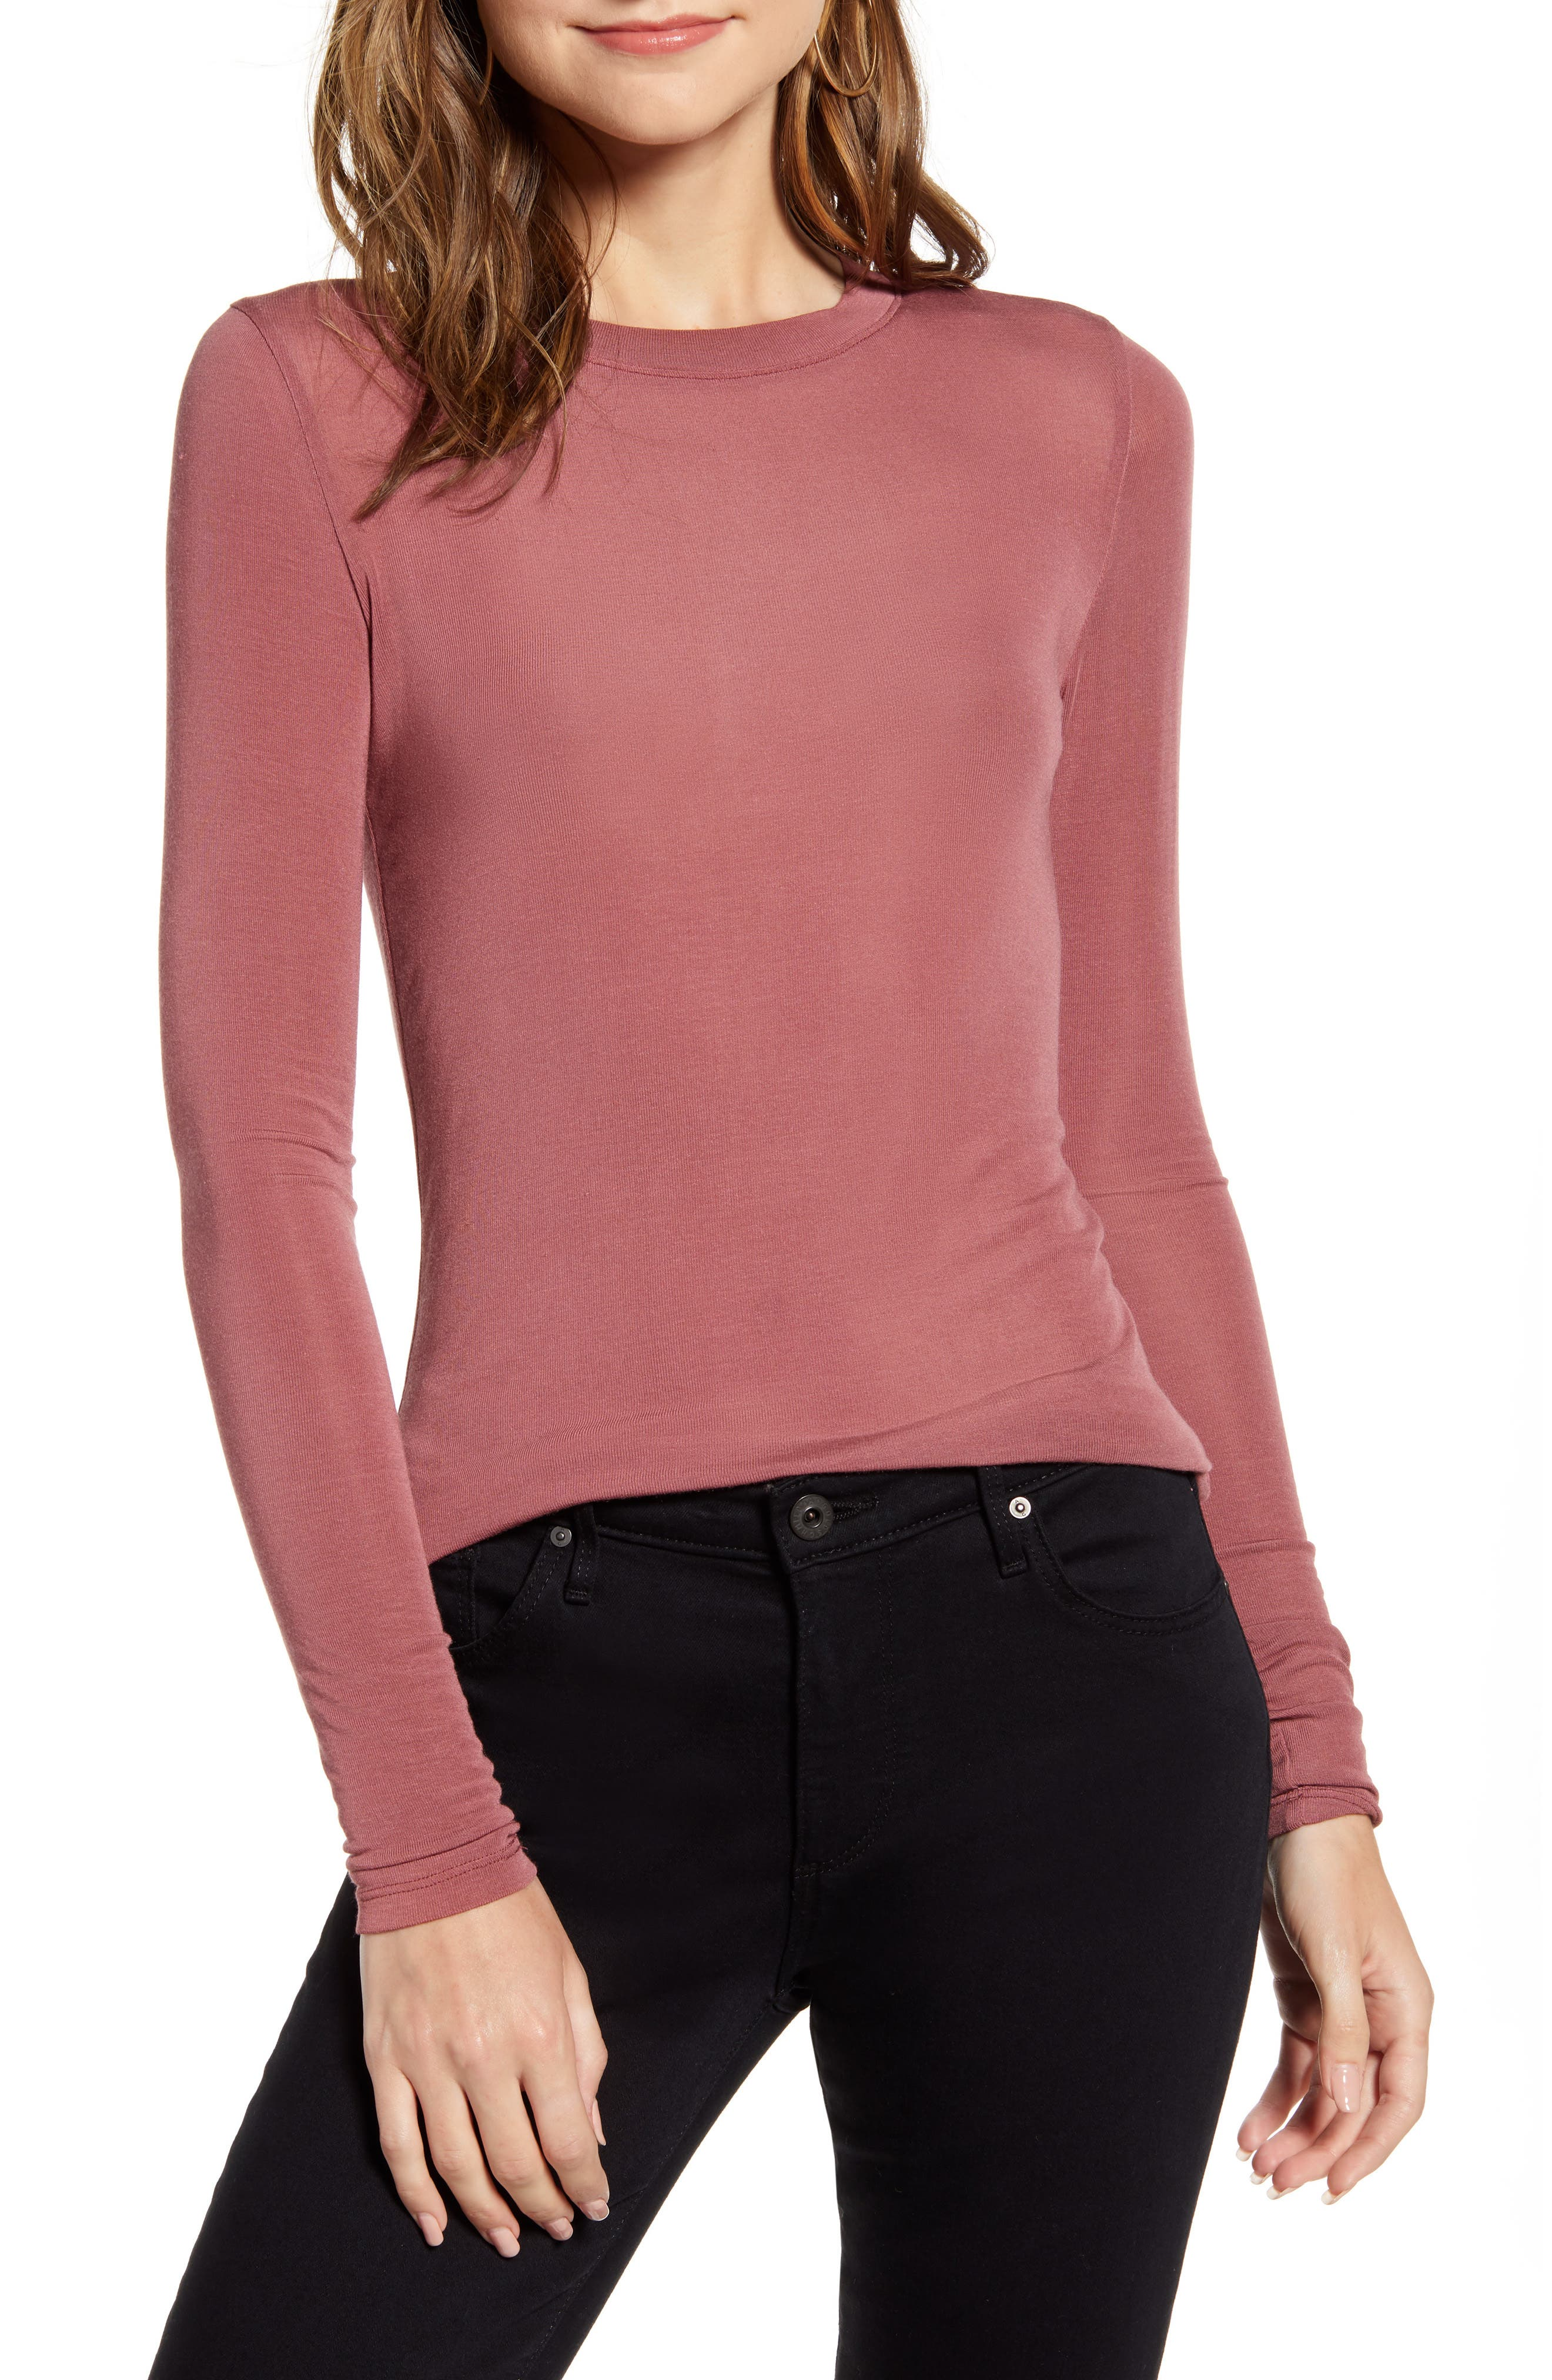 70ff0bffe229 Women's Casual Tops | Nordstrom